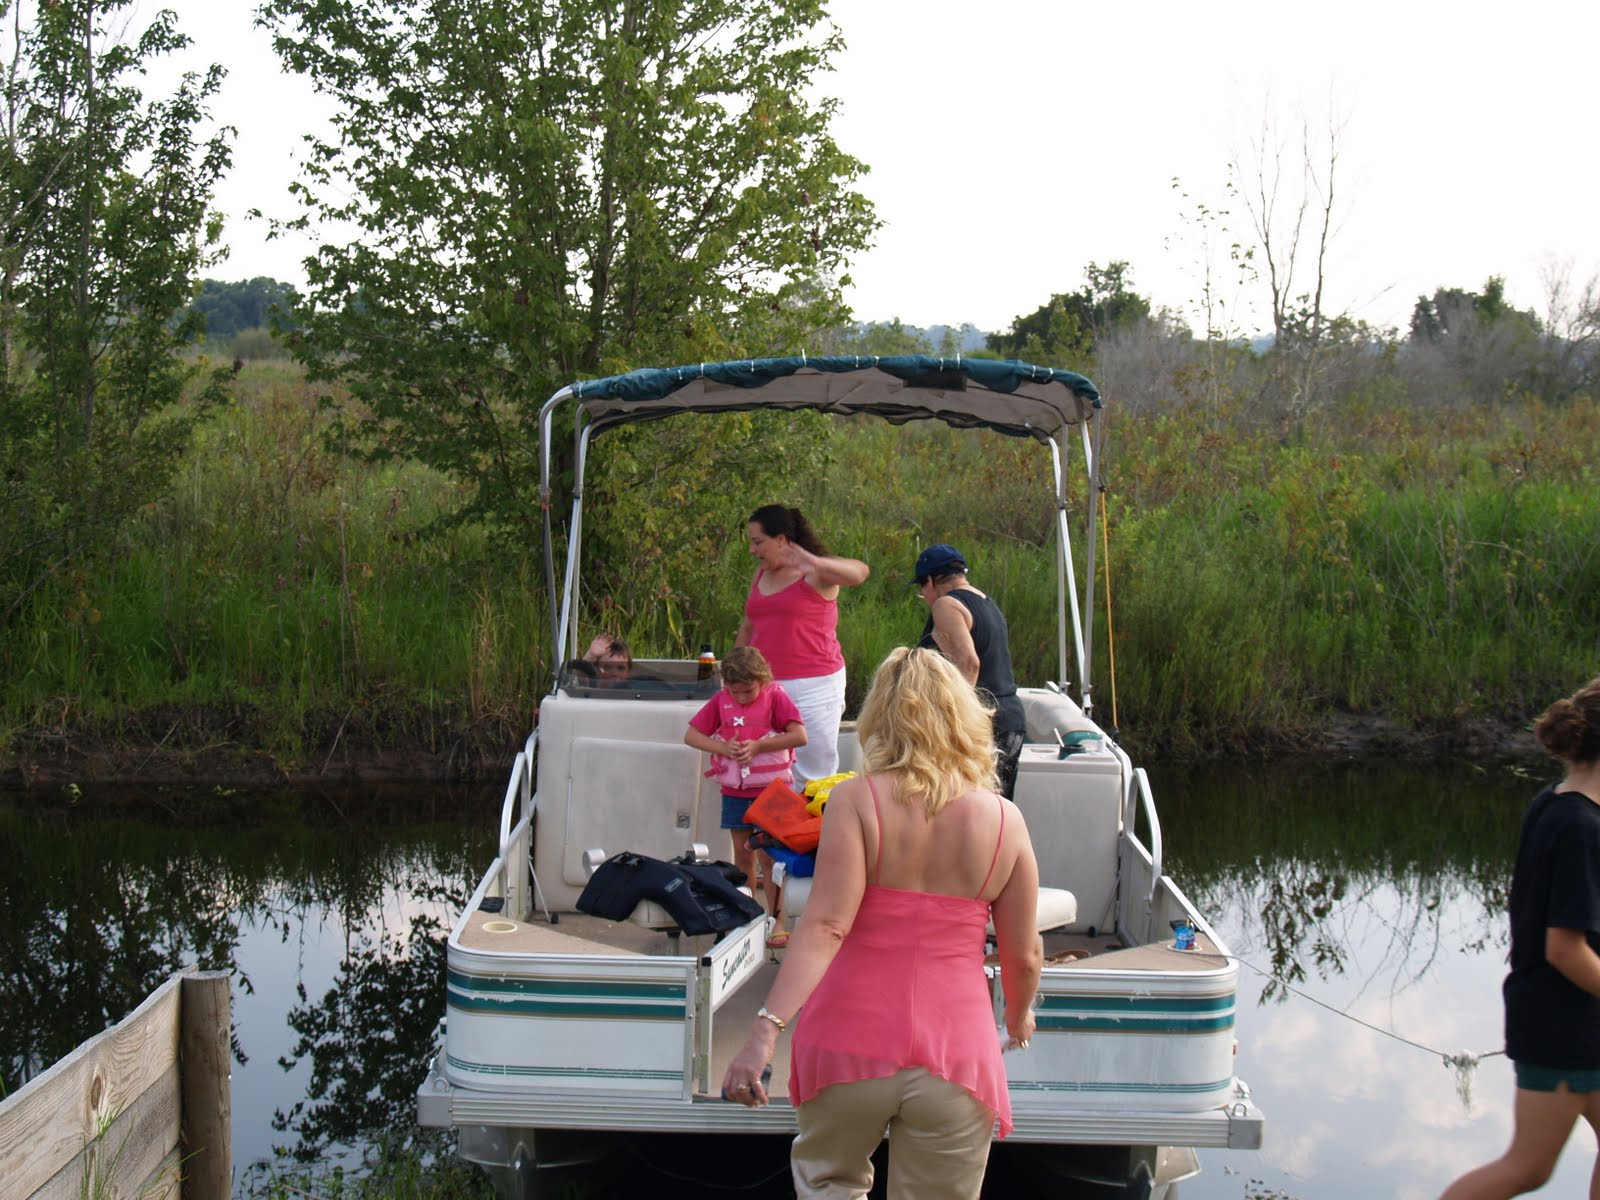 medium resolution of when we bought our home in 2005 we inherited a 1996 monark suncaster pontoon boat that made the boat roughly 10 years old and every component on it was